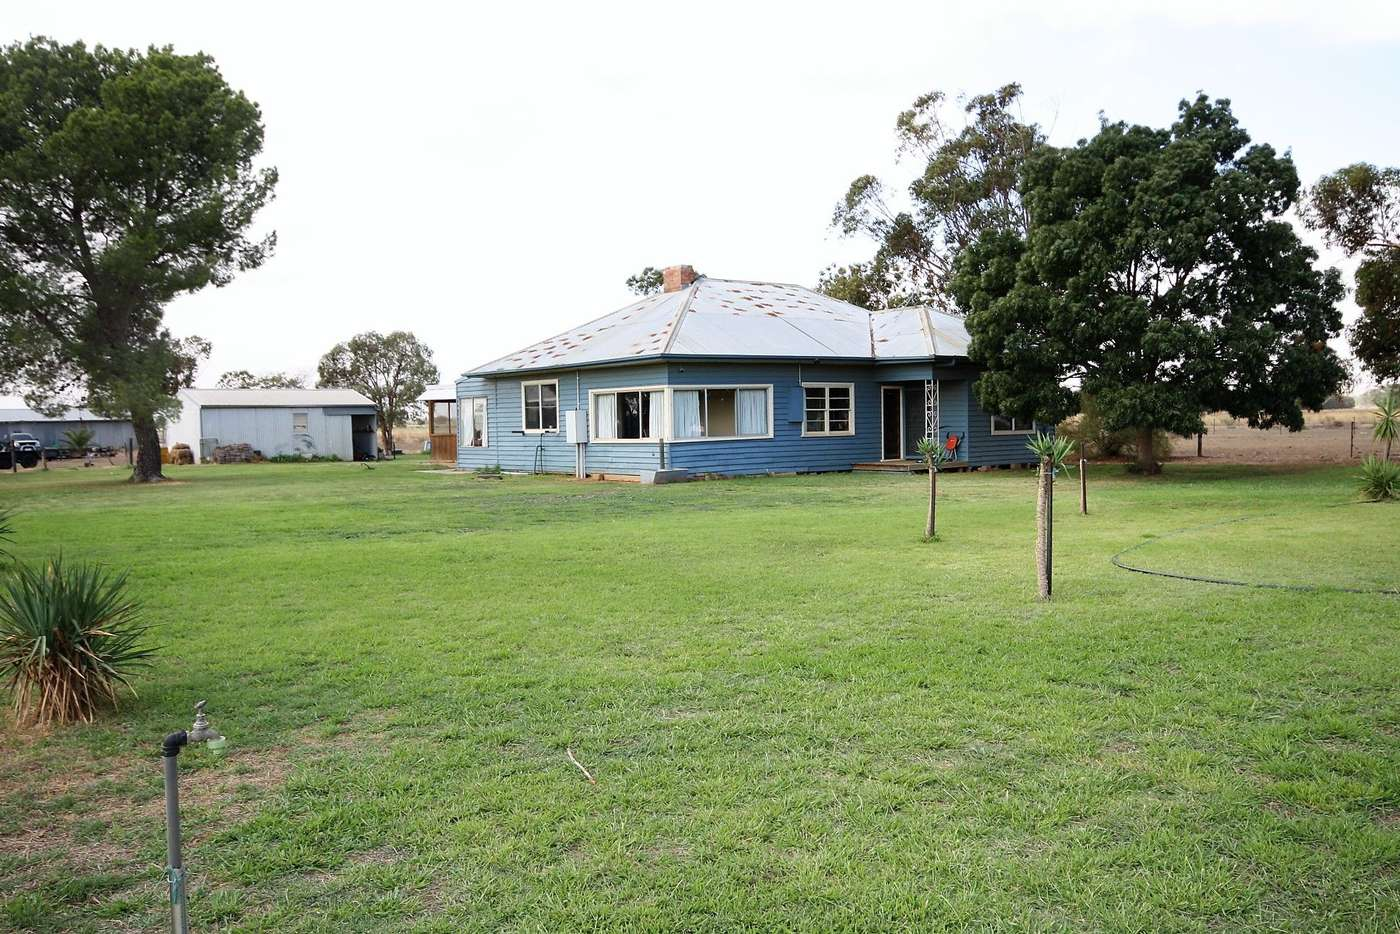 Main view of Homely house listing, 924 Lowe Road, Ballendella VIC 3561